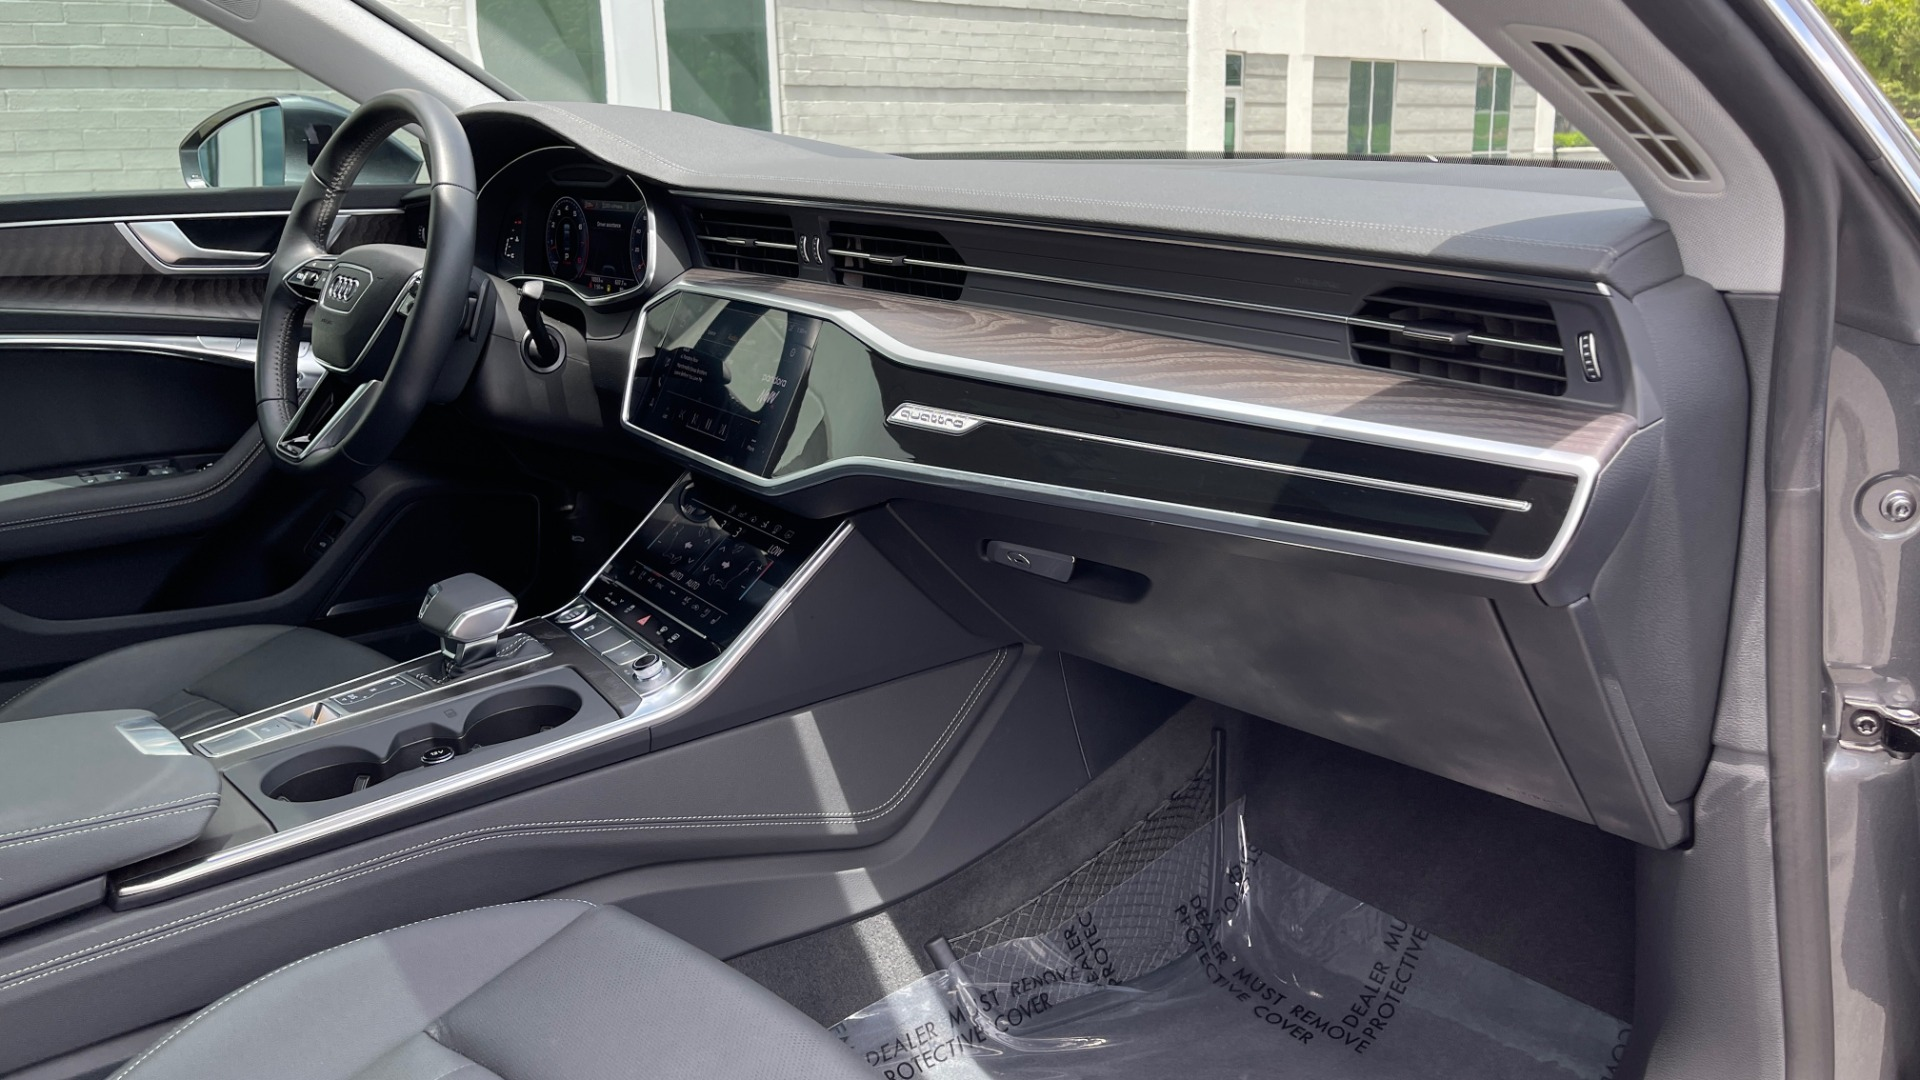 Used 2019 Audi A7 PRESTIGE 55 TFSI 3.0T / NAV / B&O SND / SUNROOF / S-LINE / 21IN WHLS / REAR for sale $66,995 at Formula Imports in Charlotte NC 28227 76